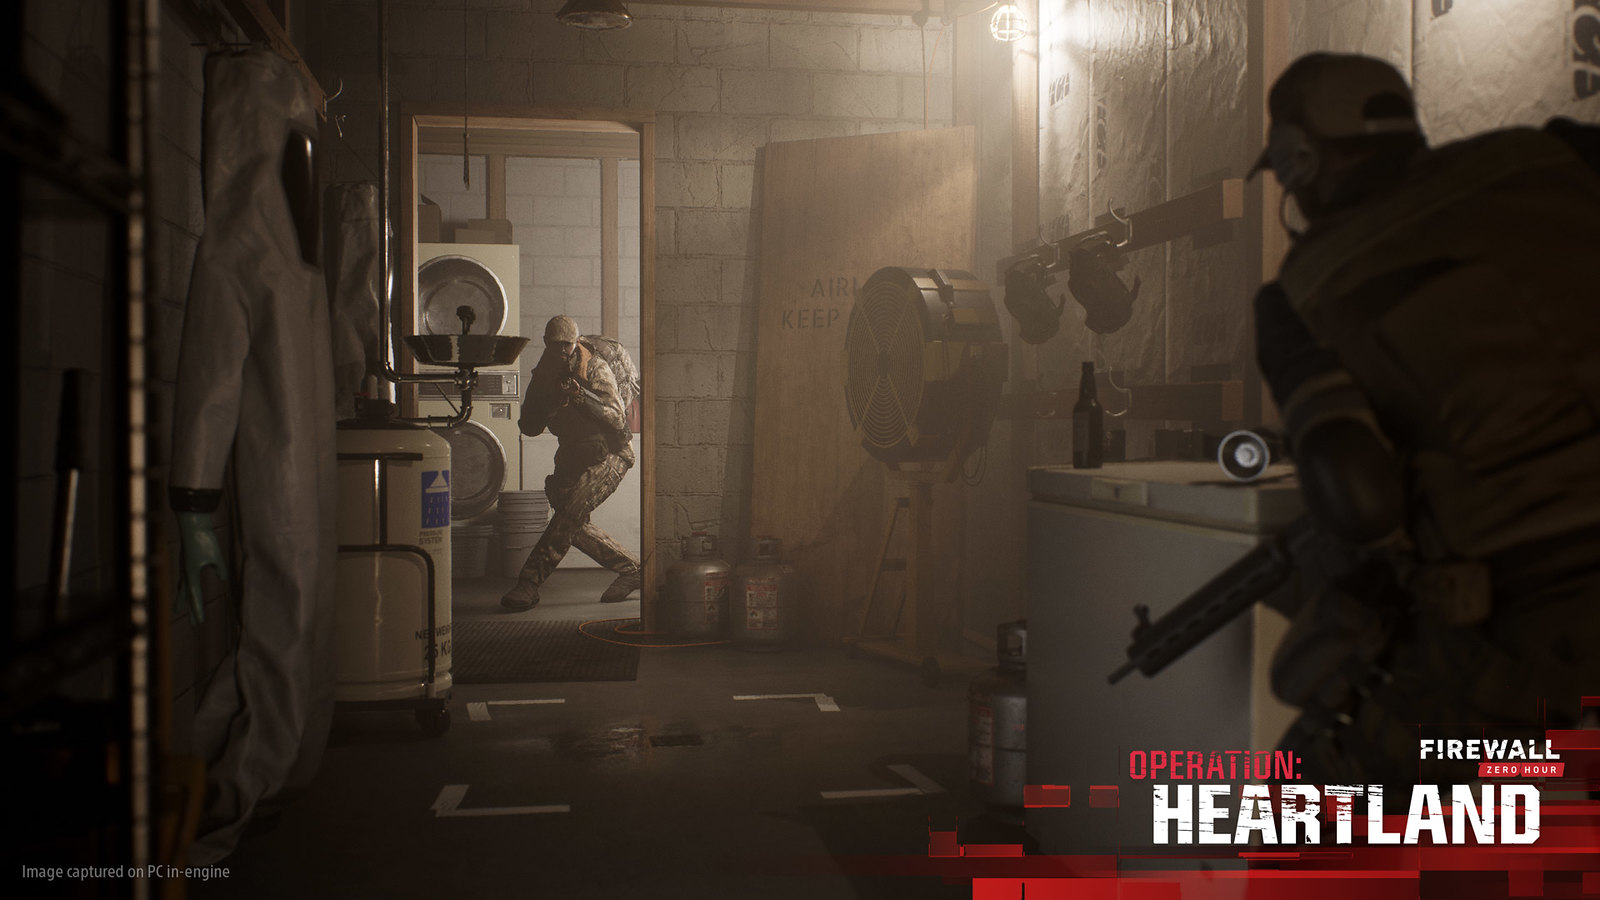 Firewall Zero Hour - Operation: Heartland on PS4